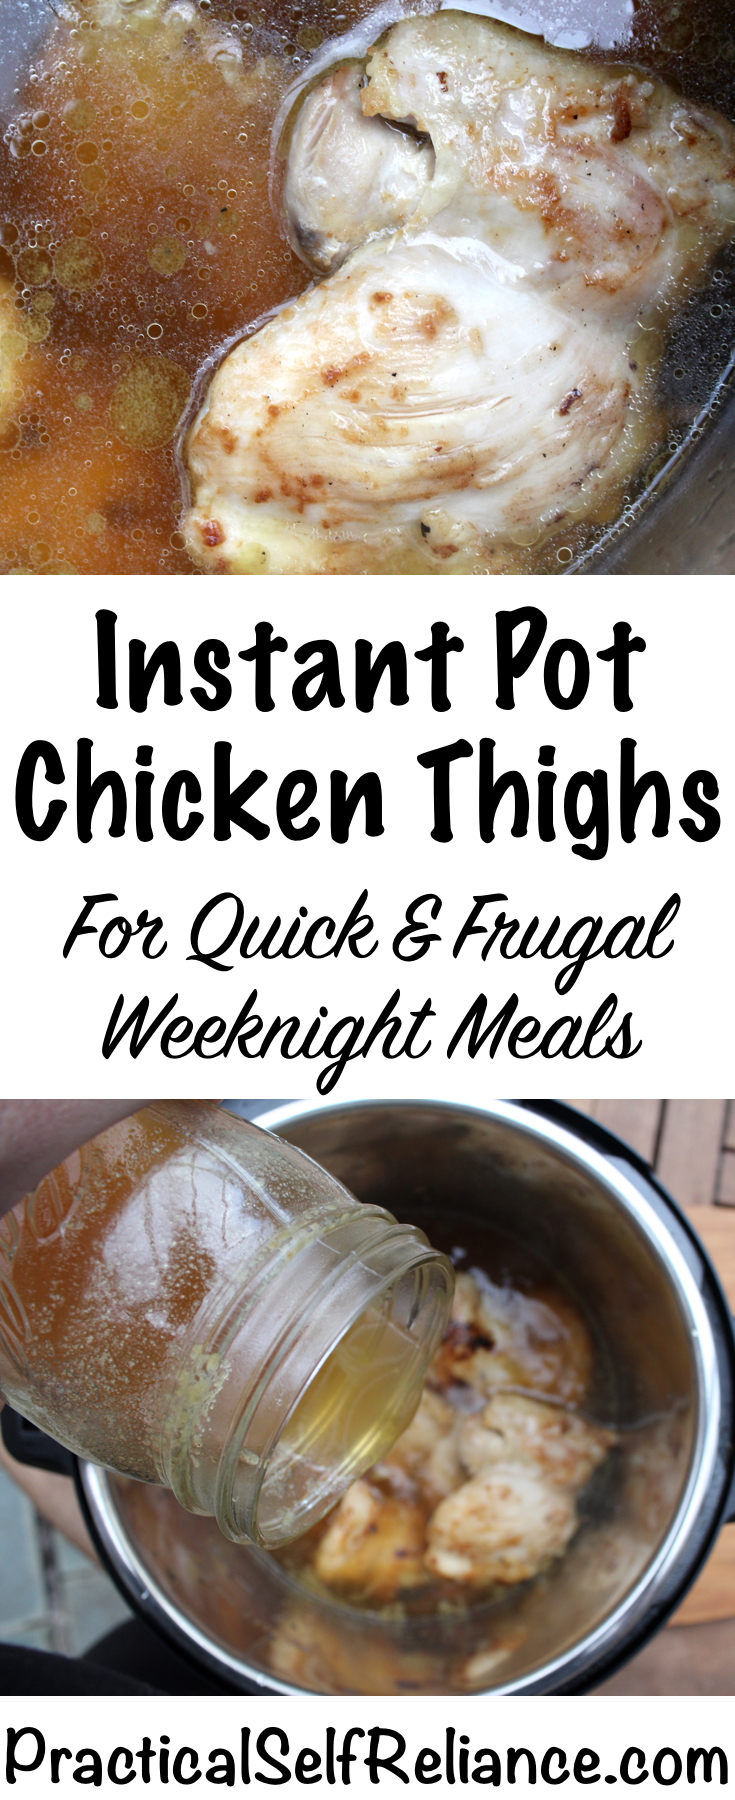 Instant Pot Chicken Thighs Recipe